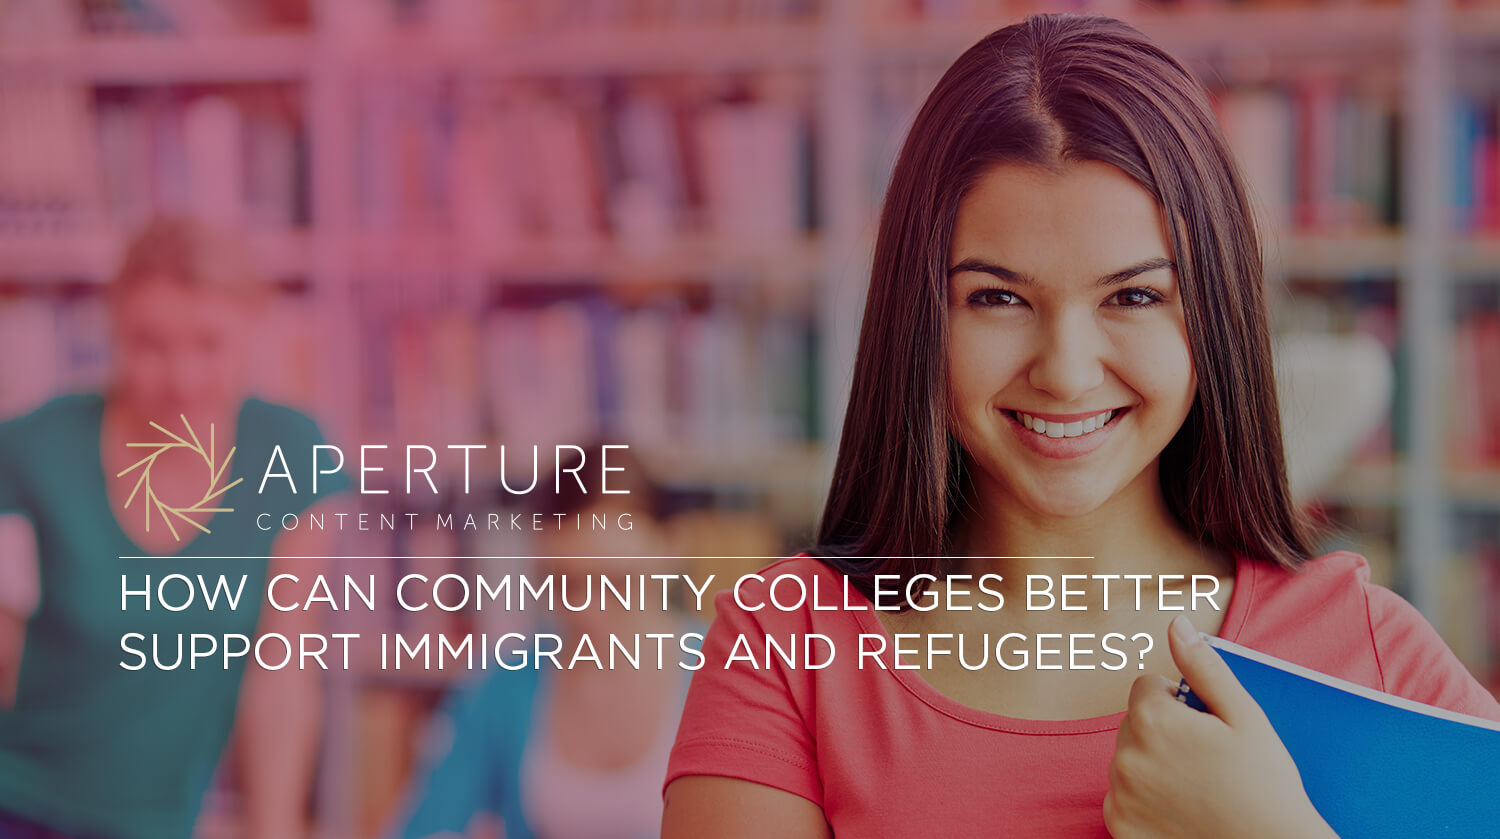 How Can Community Colleges Better Support Immigrants and Refugees?